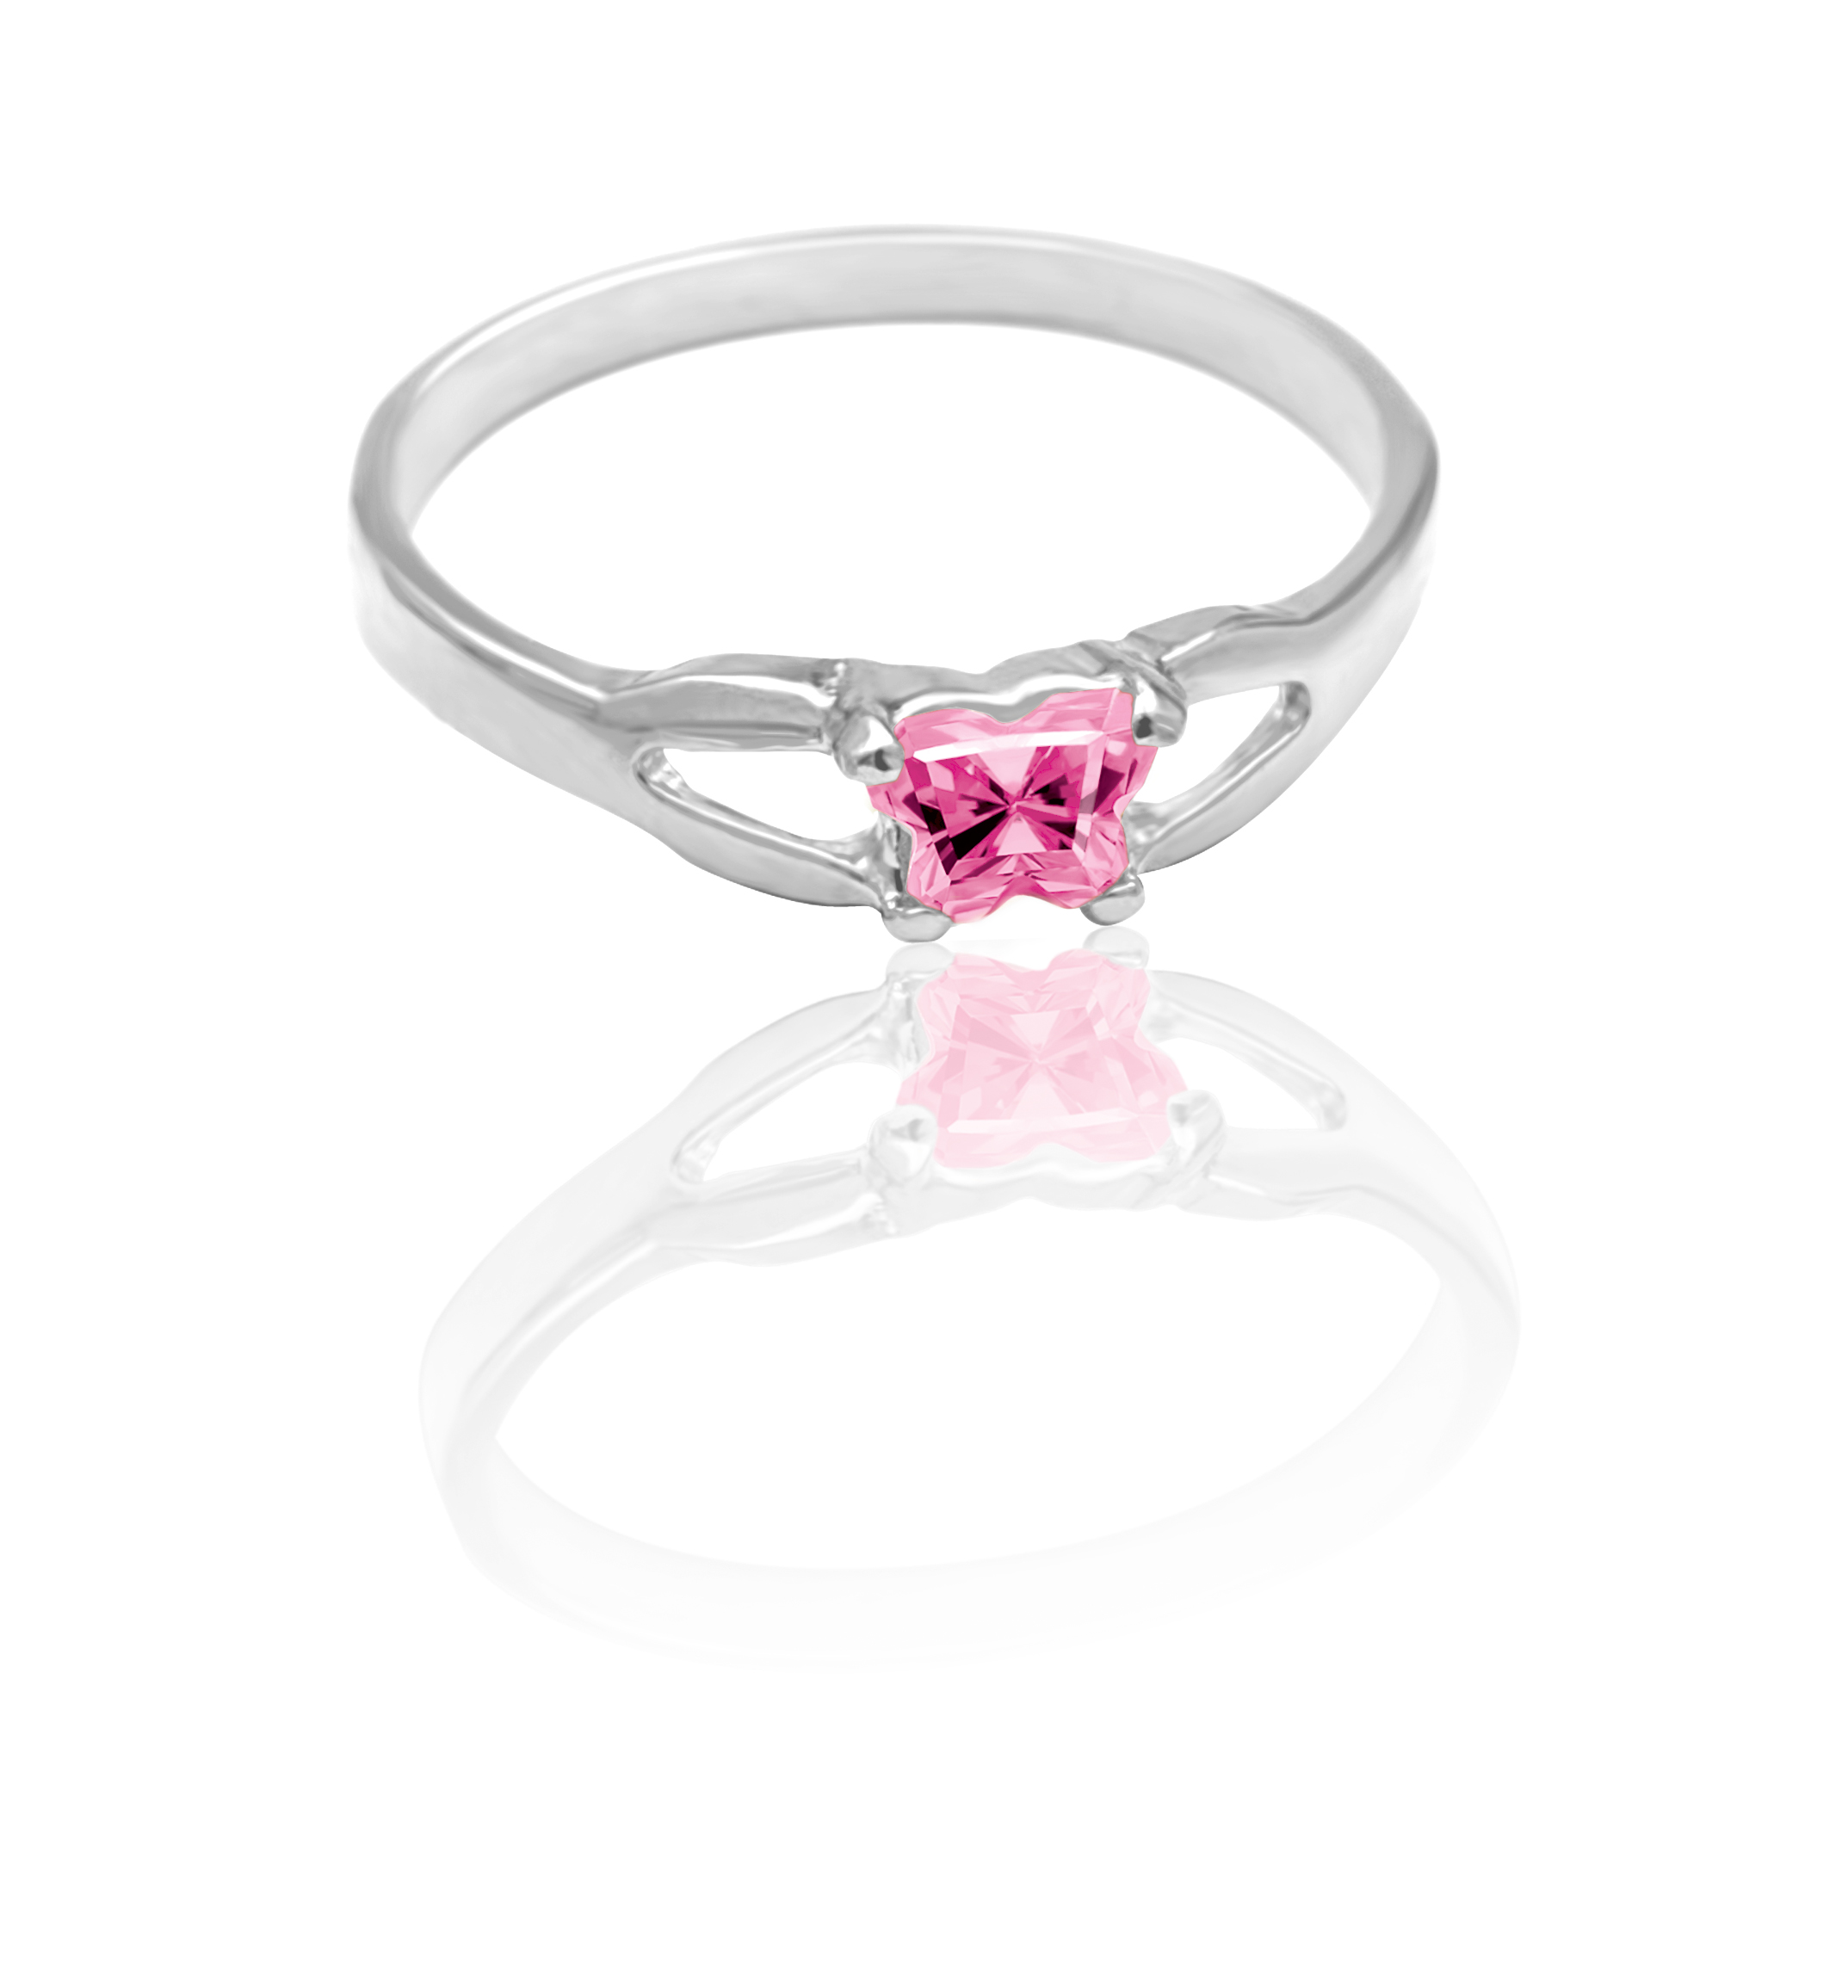 children's ring in sterling silver with light pink cubic zirconia (month of October)*